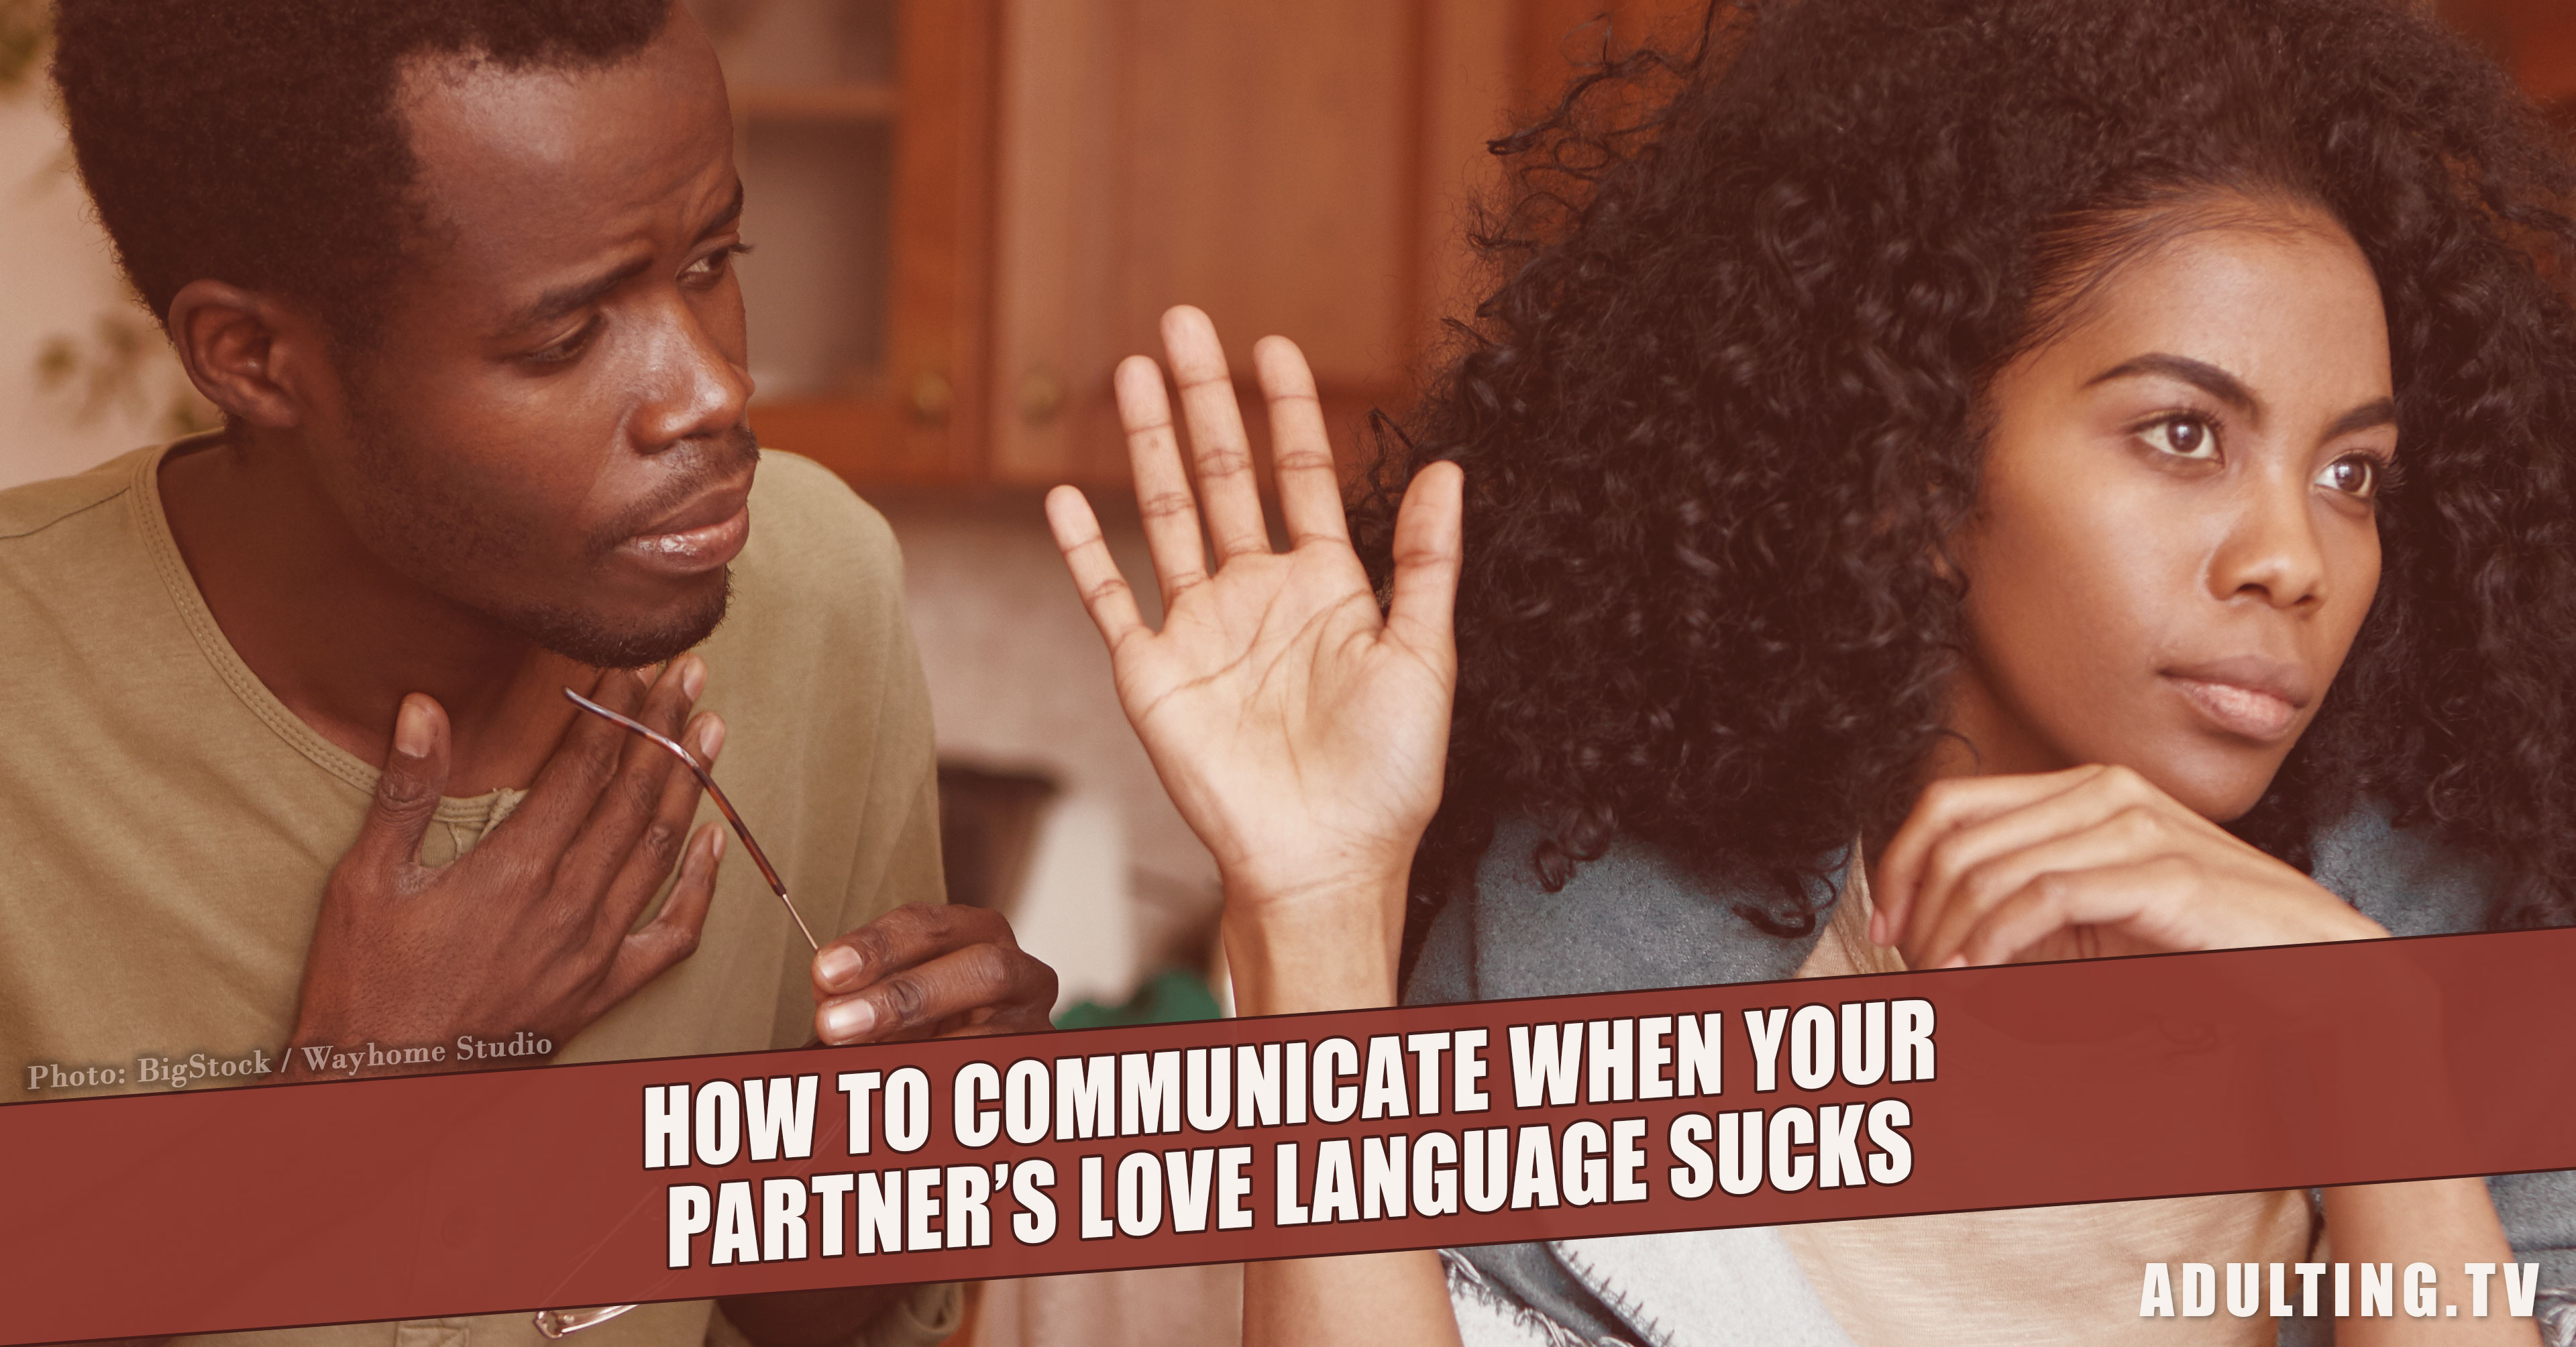 This is what the language of love says about you, through which you interact with a partner